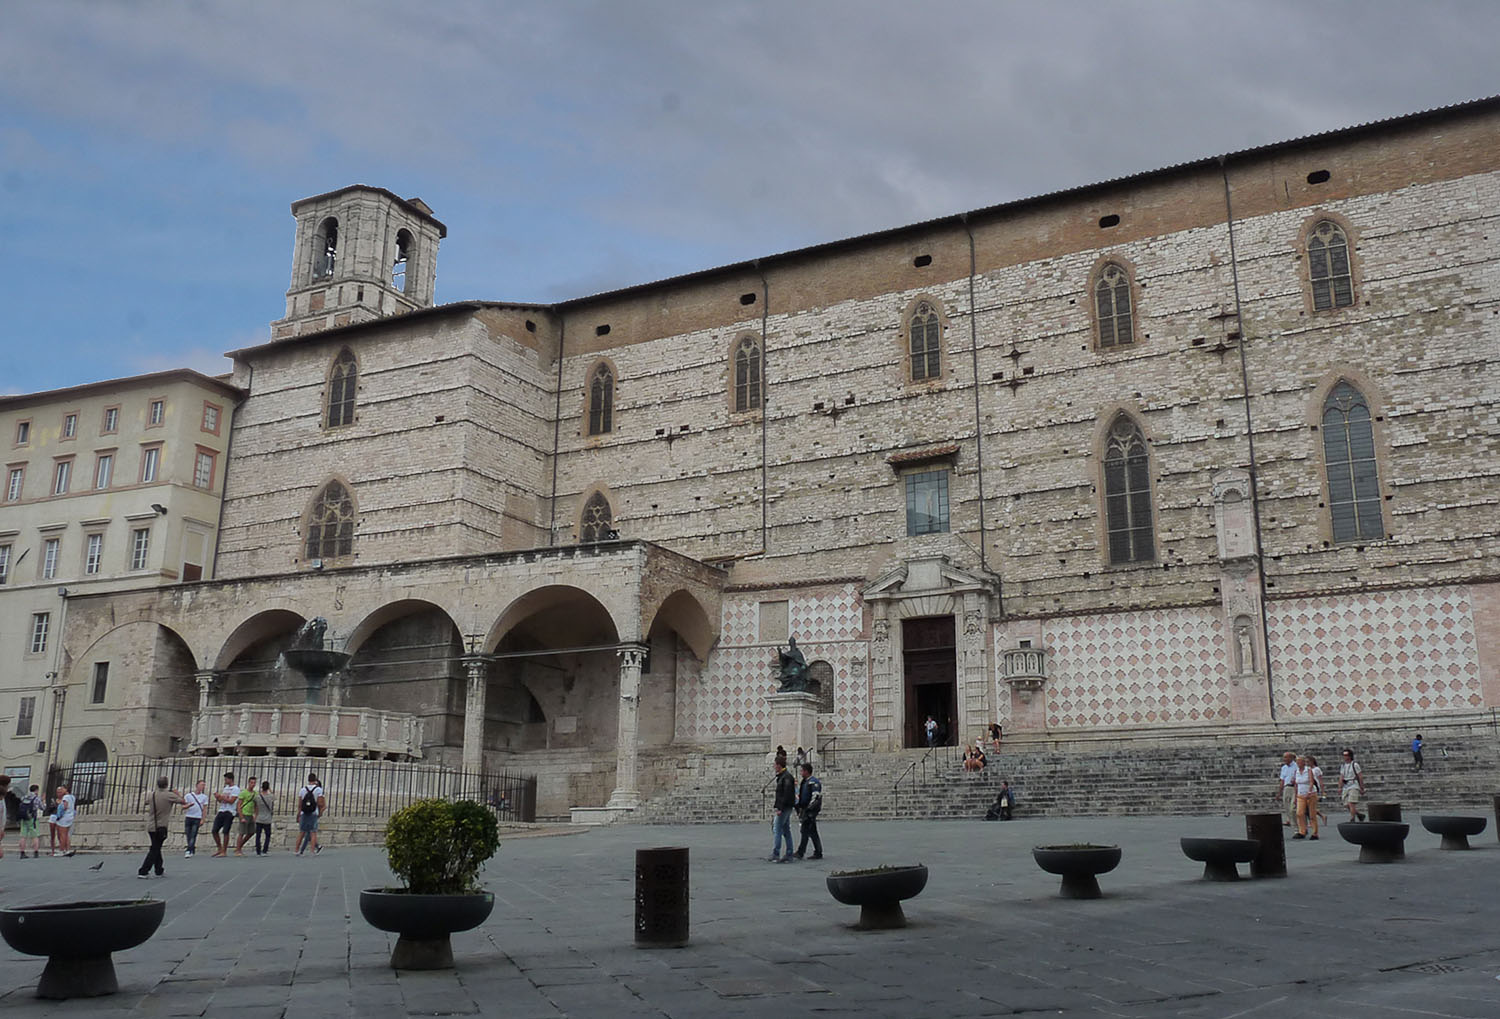 The Cathedral of San Lorenzo in Perugia